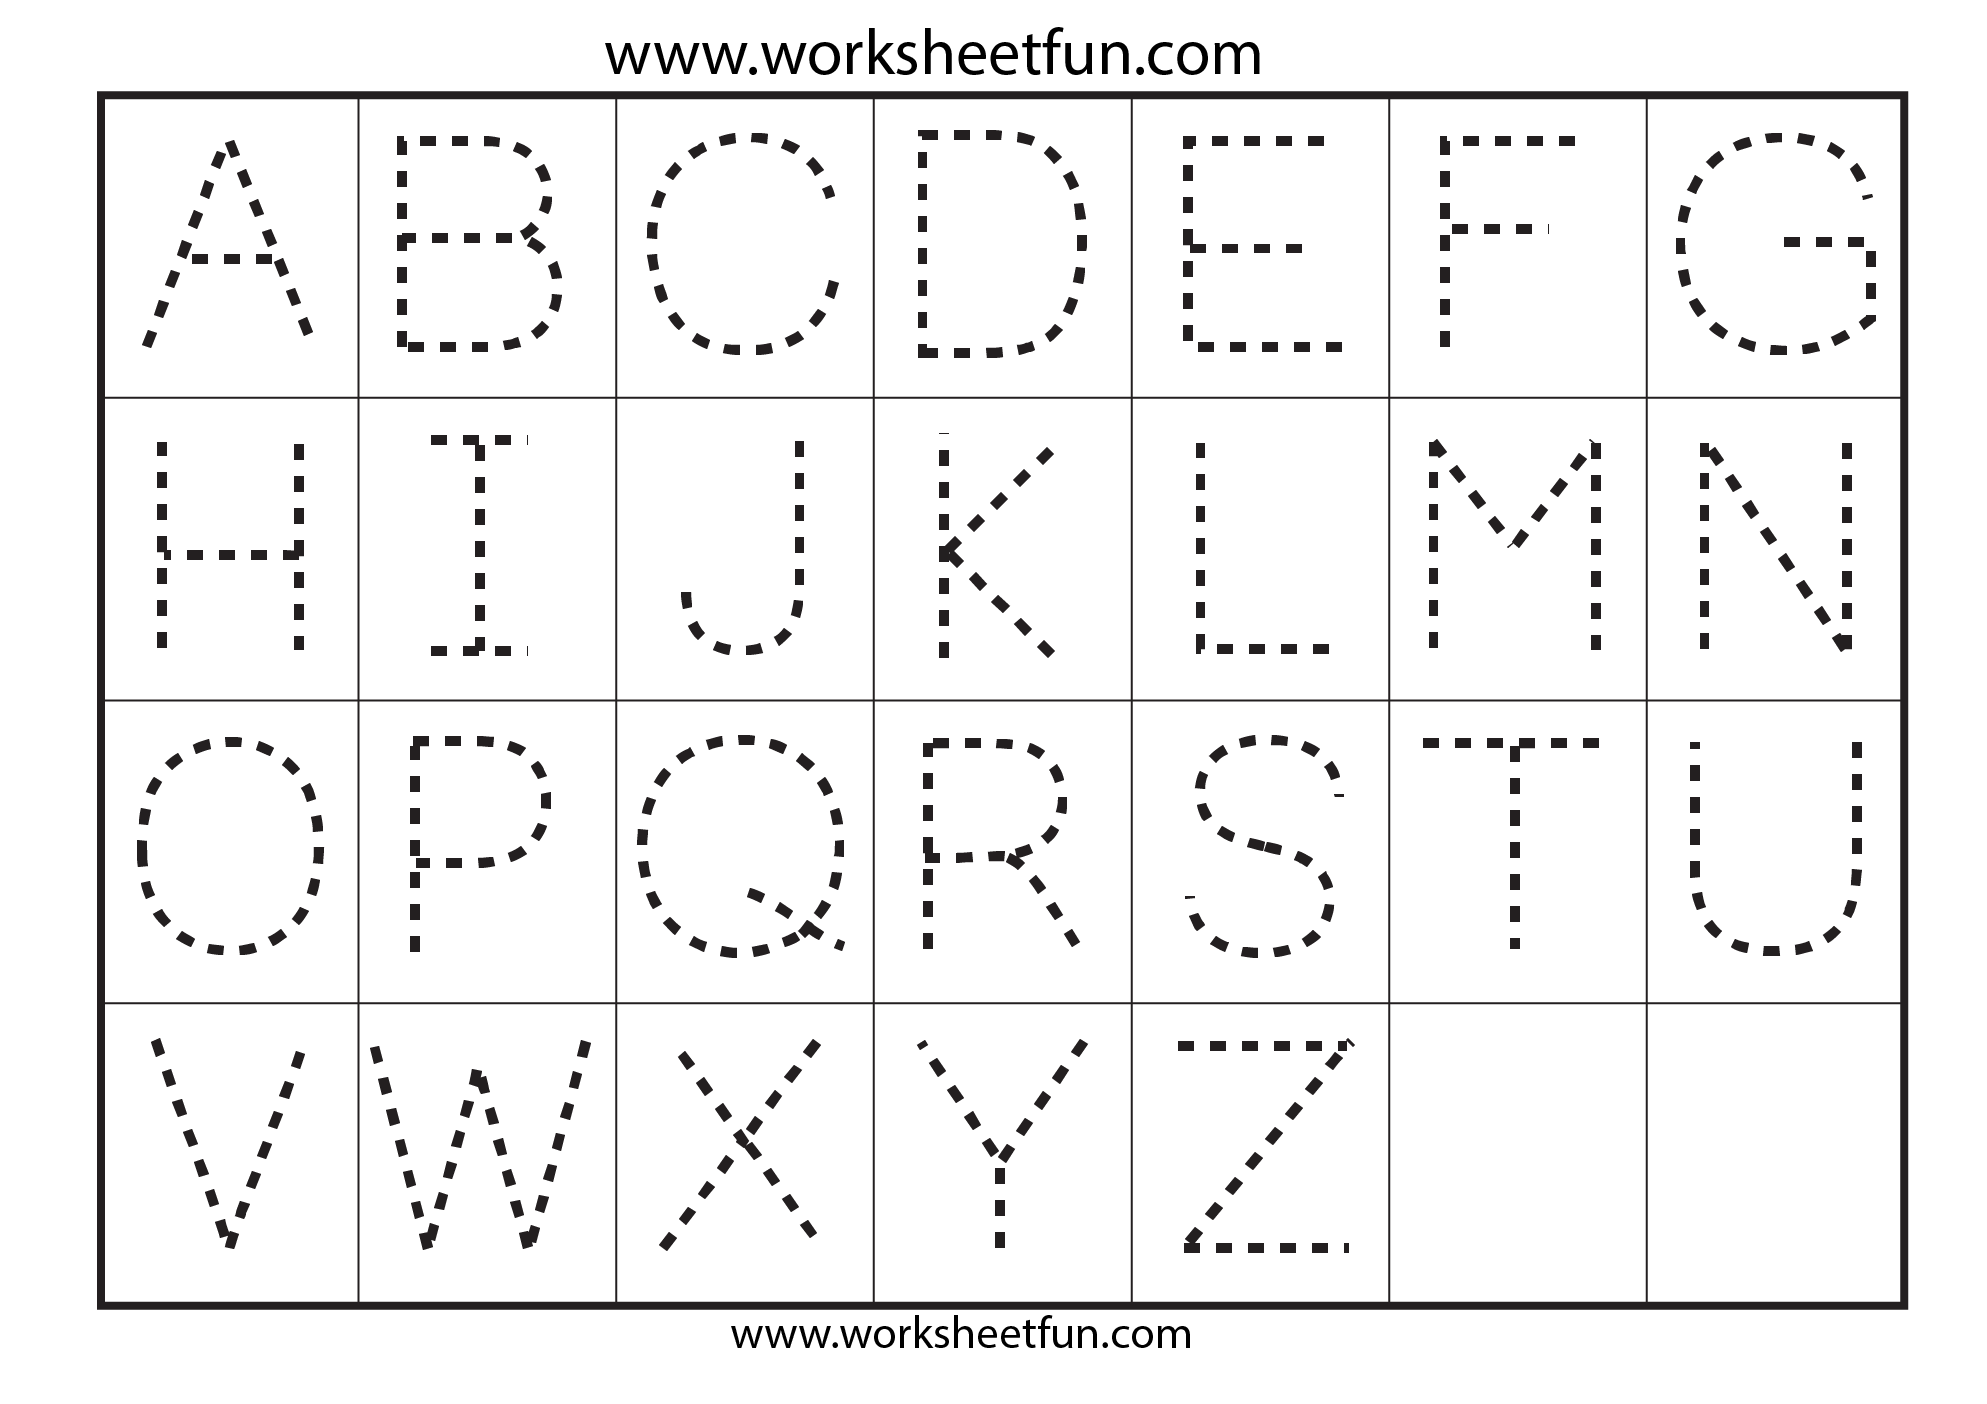 Worksheets Abc Tracing Worksheets For Kindergarten preschool worksheets alphabet tracing letter a art pinterest a